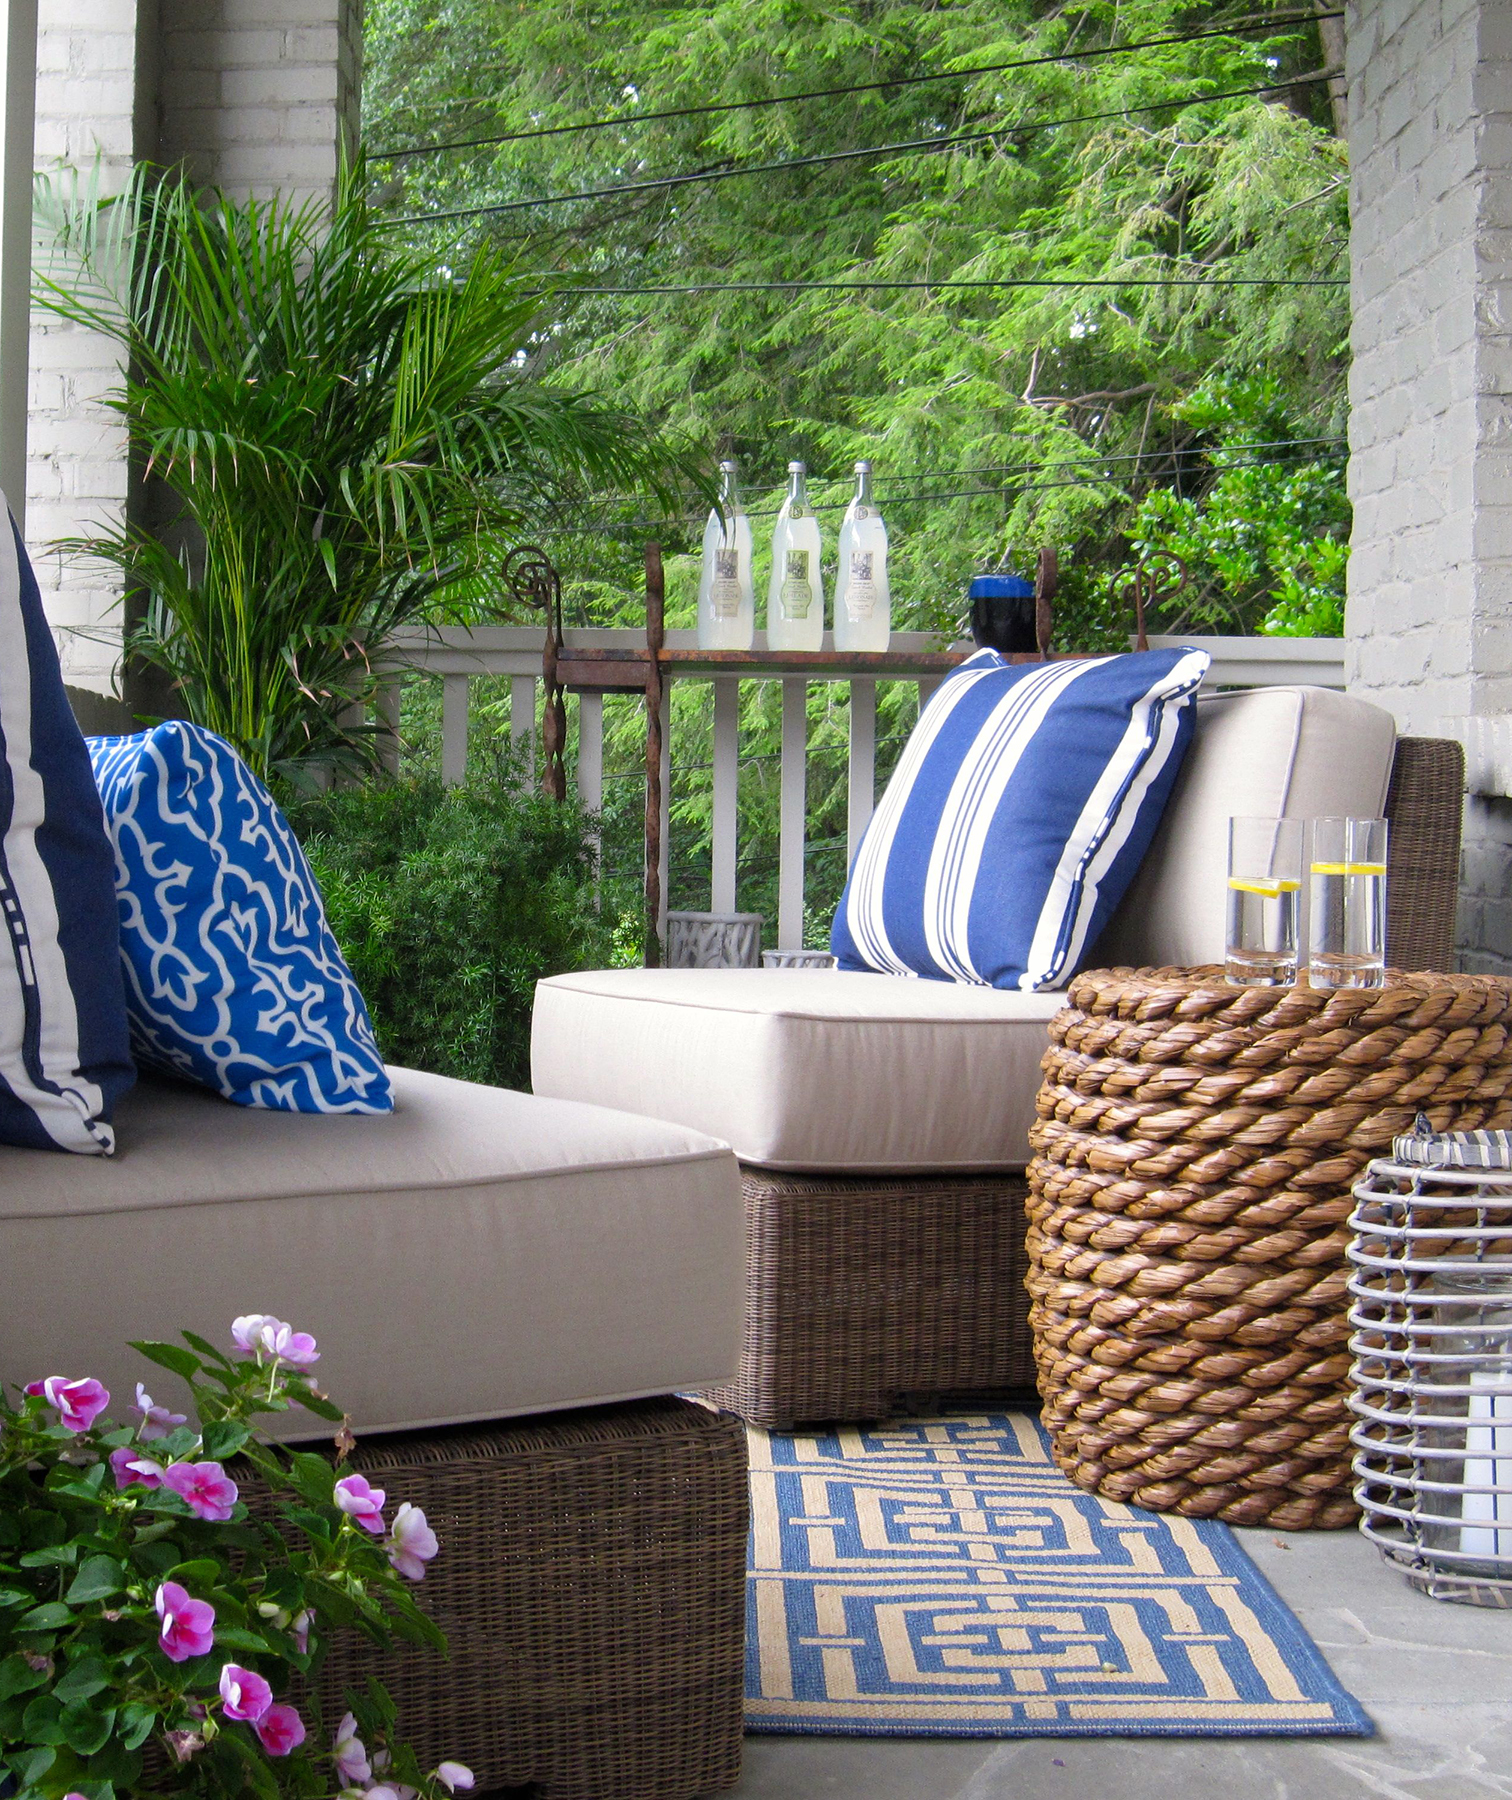 Small Patio Ideas | Real Simple on Small Outdoor Patio Ideas id=42690